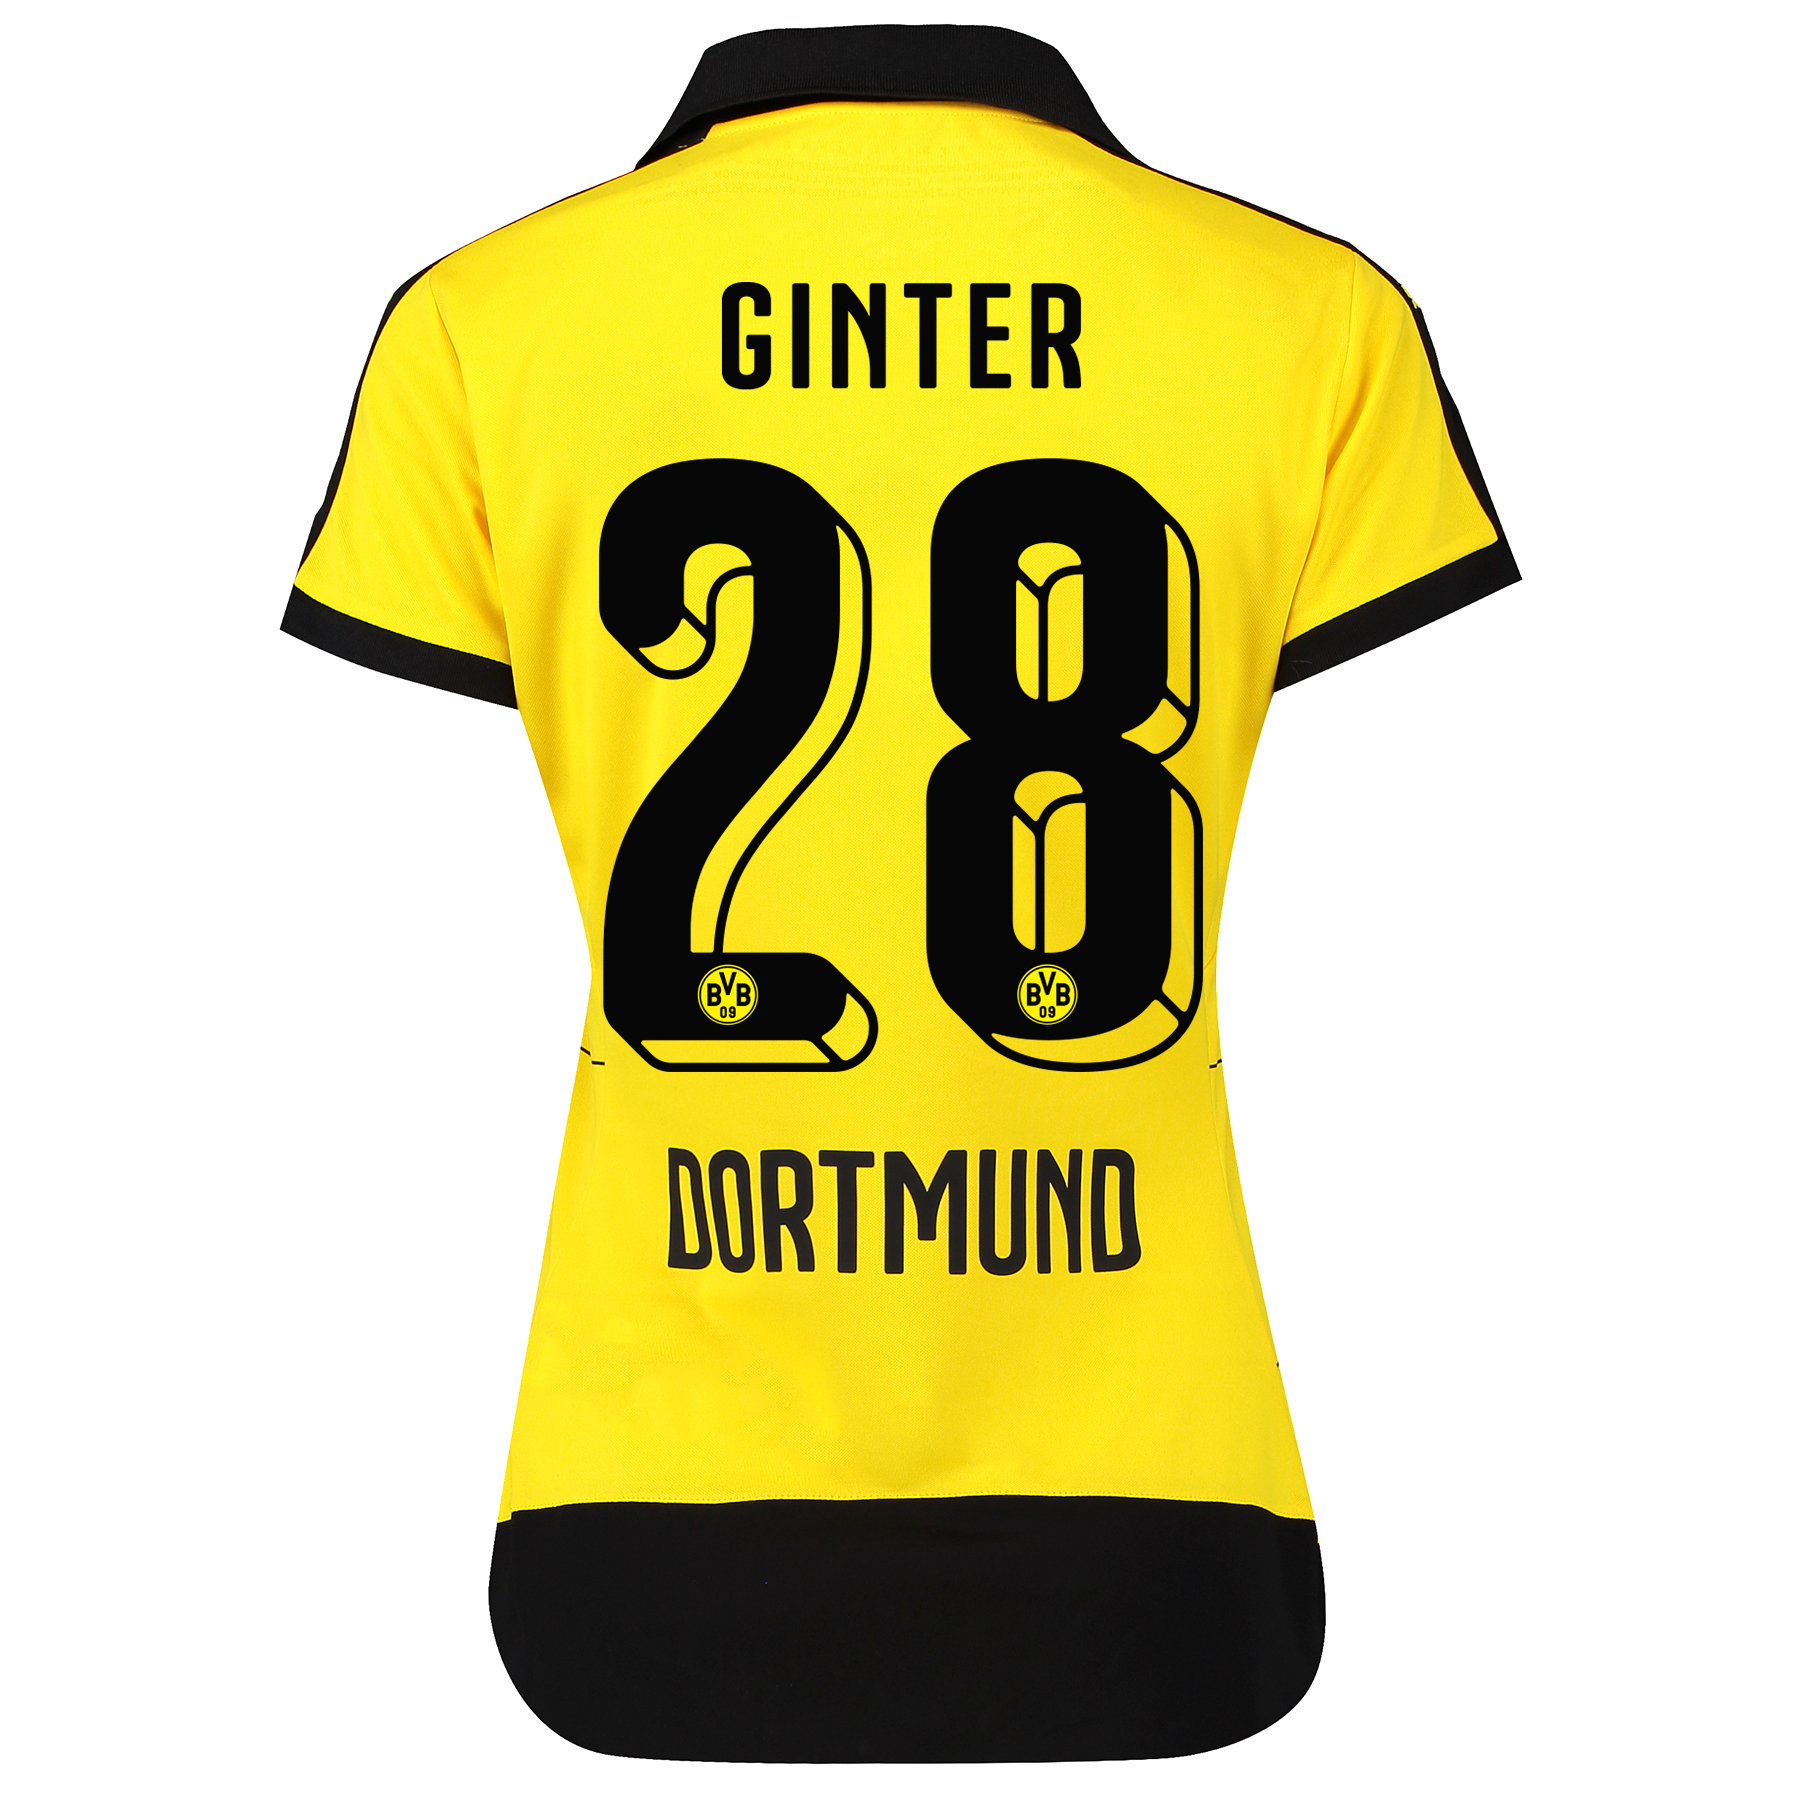 BVB Home Shirt 2015/16 – Womens with Sponsor Yellow with Matthias Gint